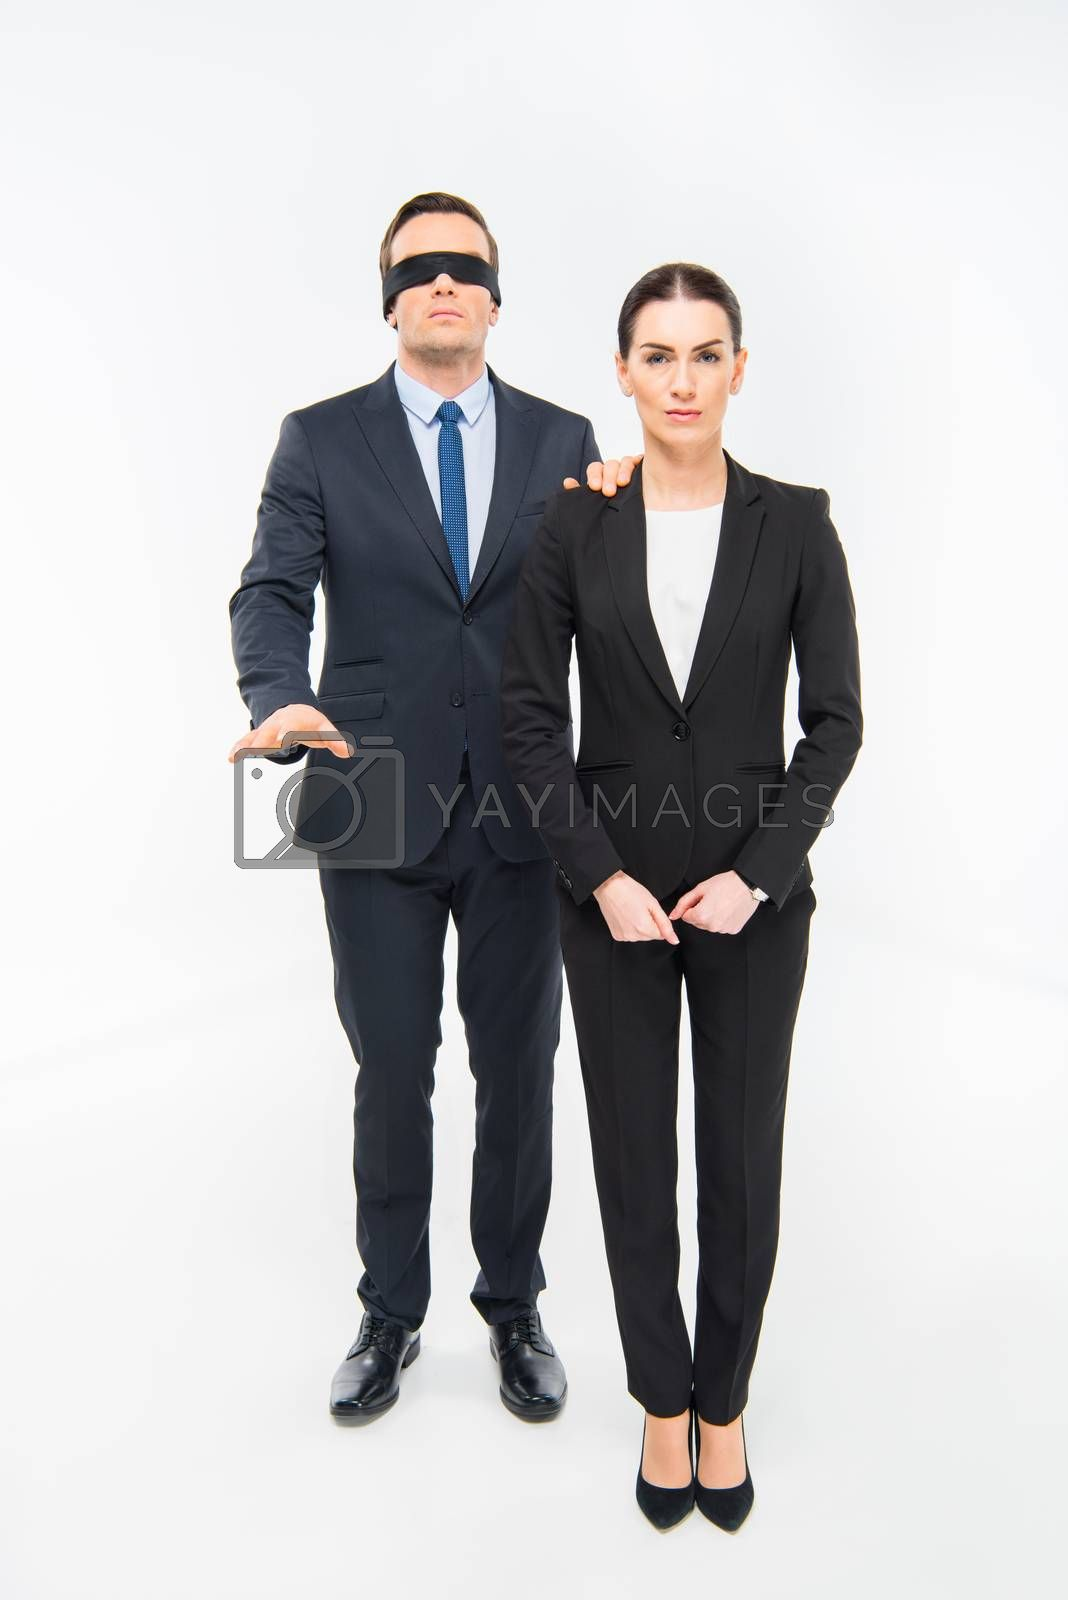 Businessman in blindfold holding his hand on shoulder of businesswoman on white